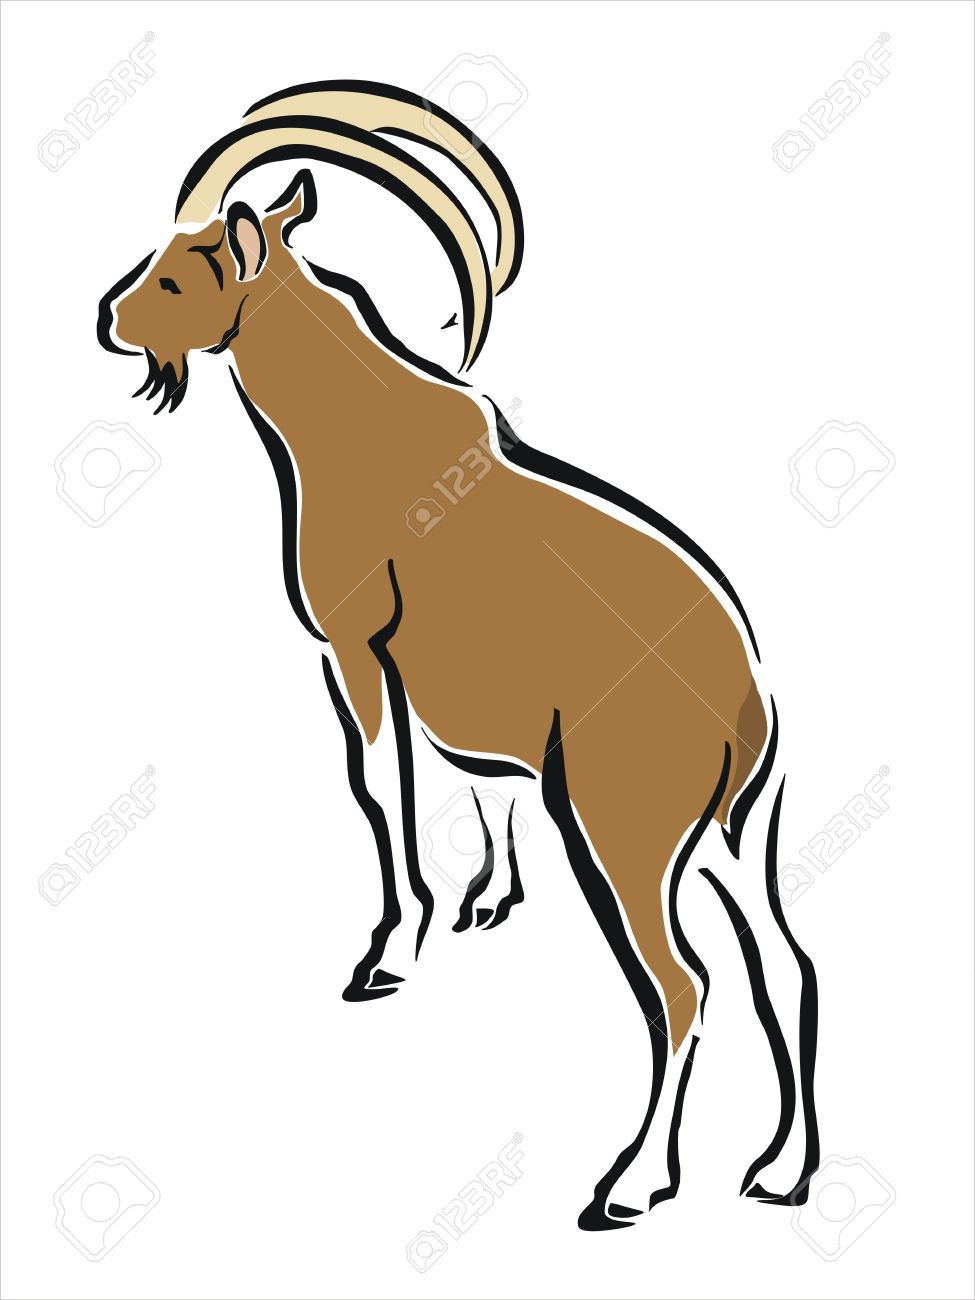 drawing of a brown mountain goat